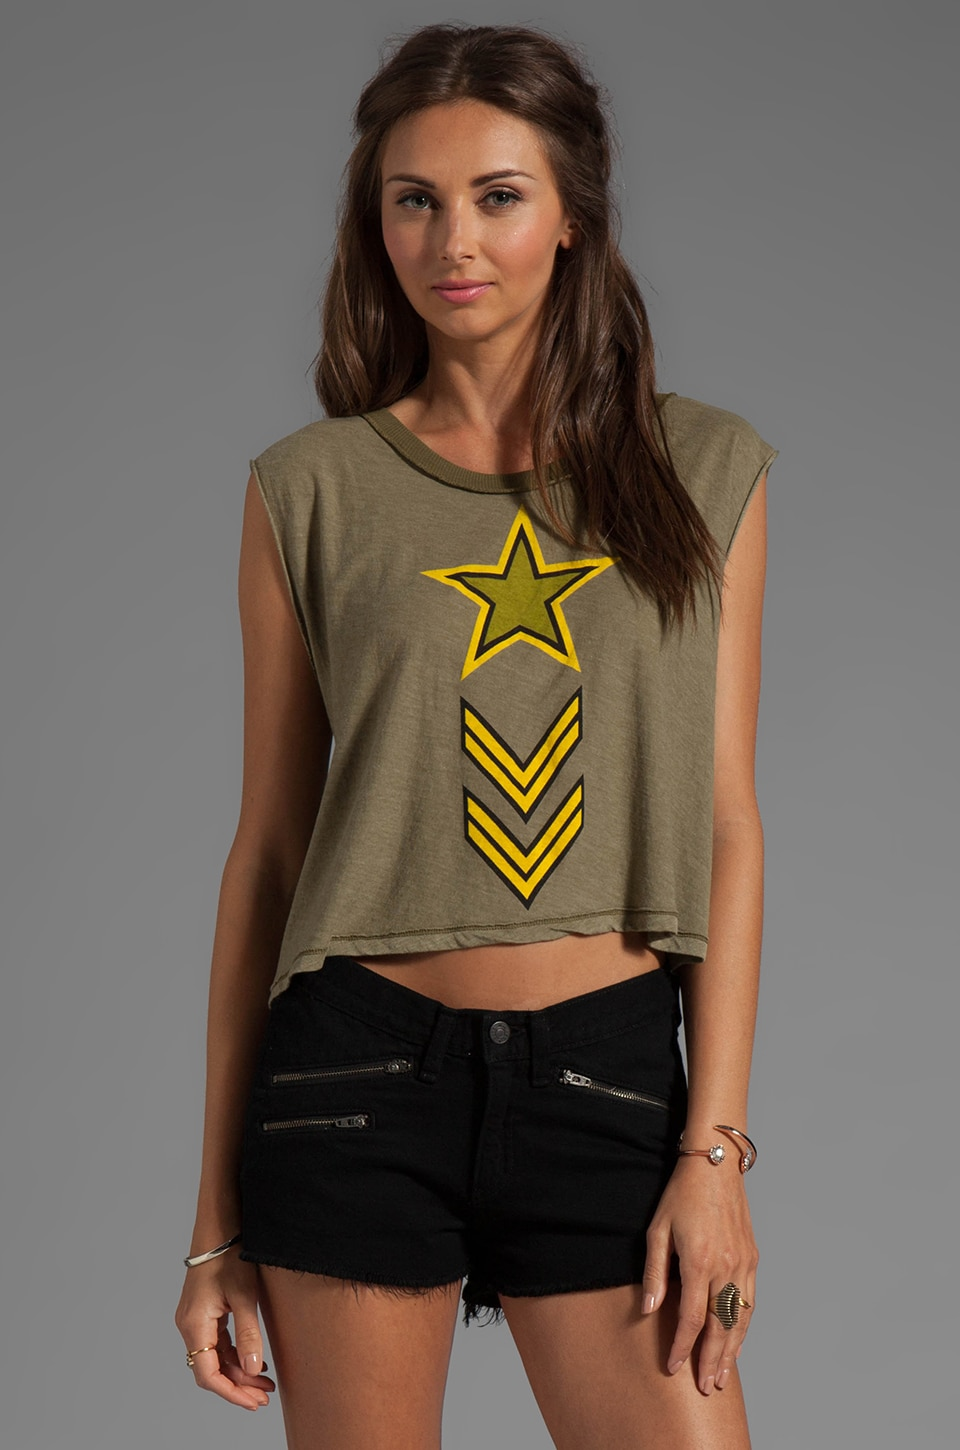 Wildfox Couture Jersey Soldier Boy Cut-Off Graphic Tee in Vintage Army